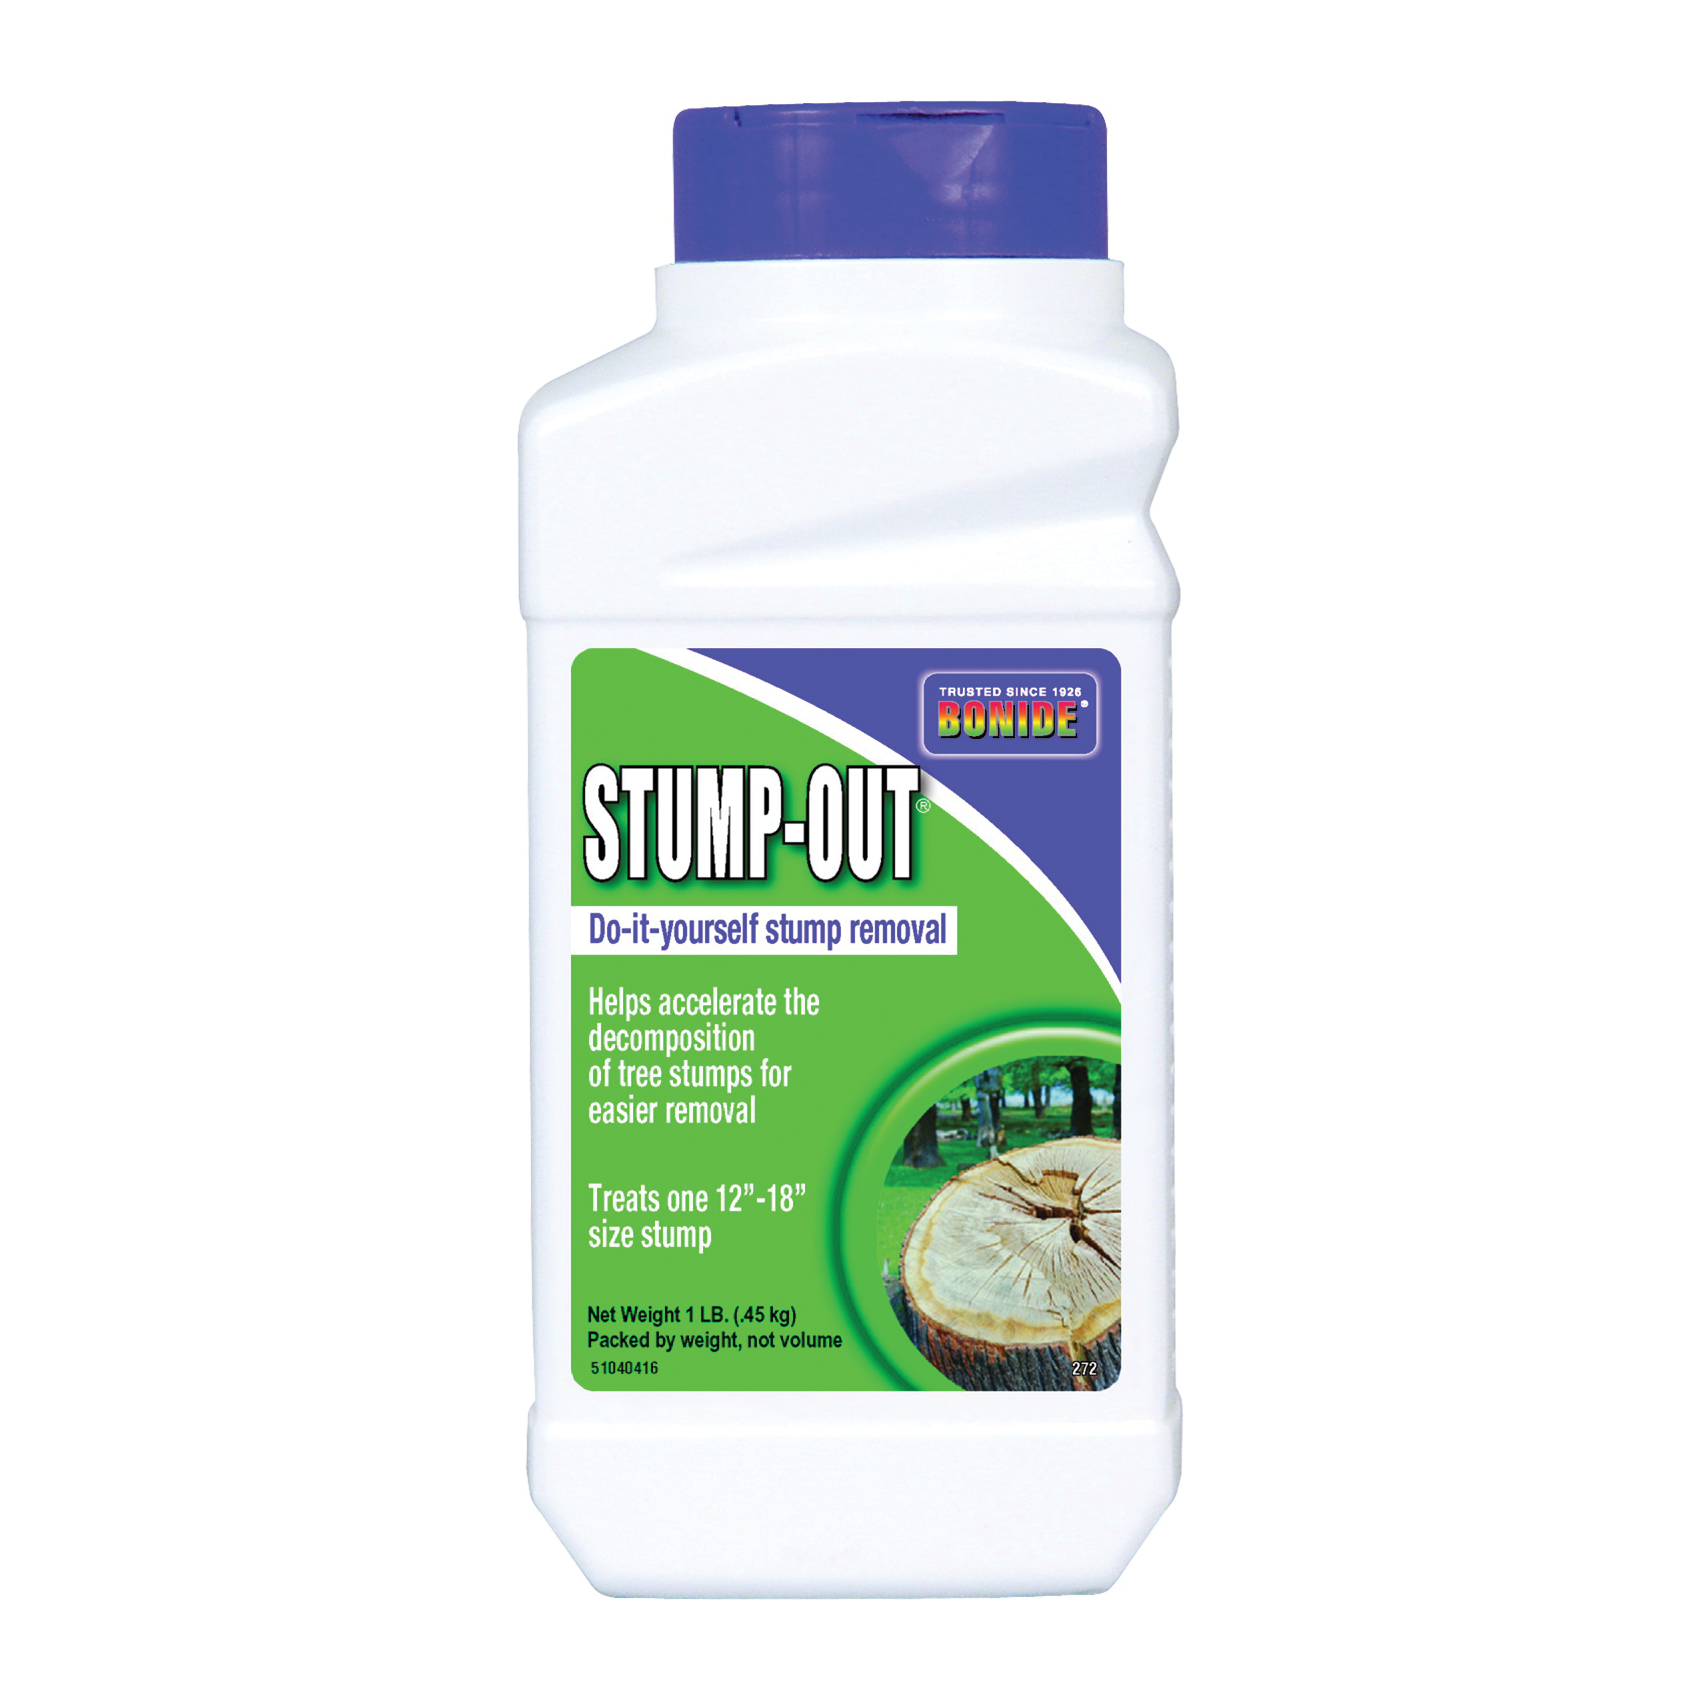 Picture of Bonide 272 Stump Removal, Solid, White/Yellow, 1 lb Package, Bottle